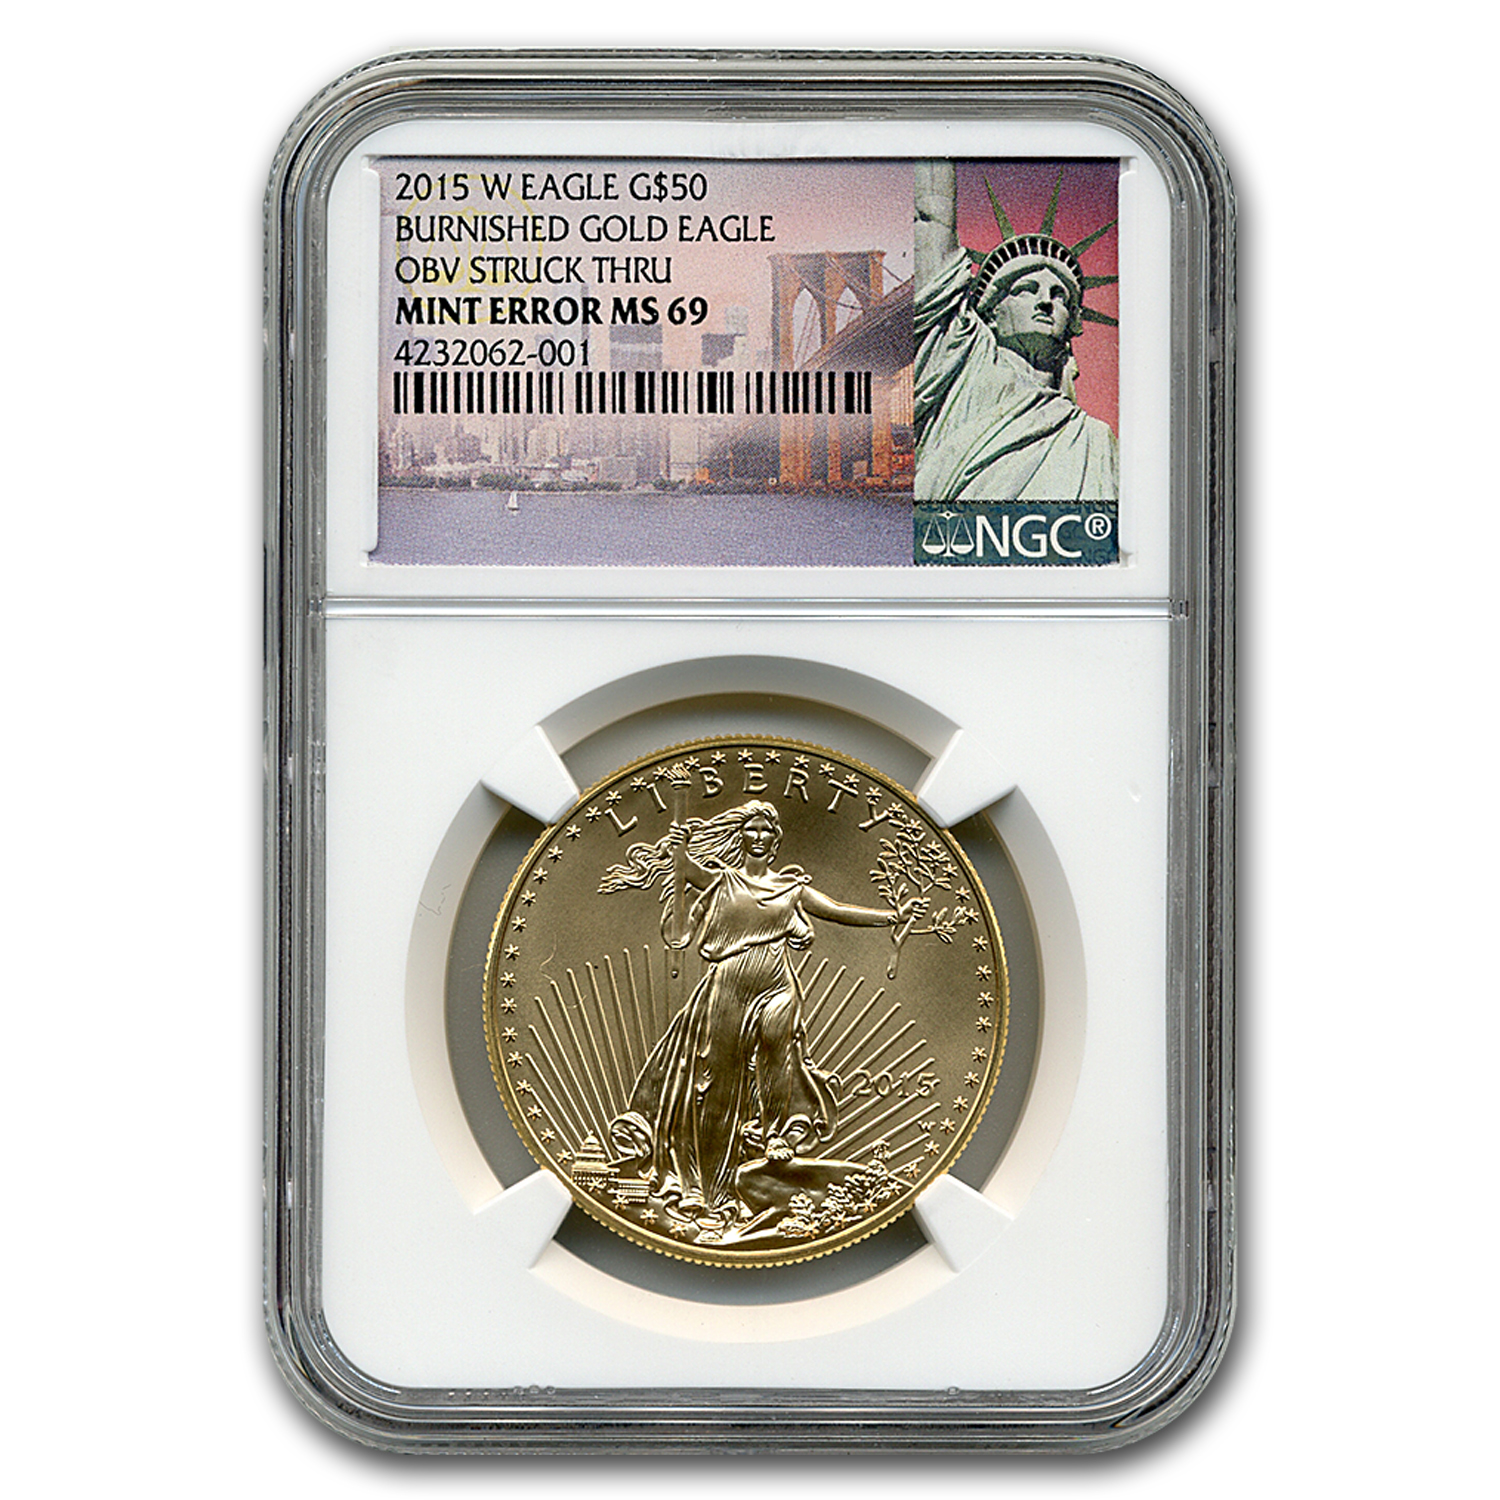 2015-W 1 oz Burnished Gold Eagle MS-69 NGC (Obv Mint Error)